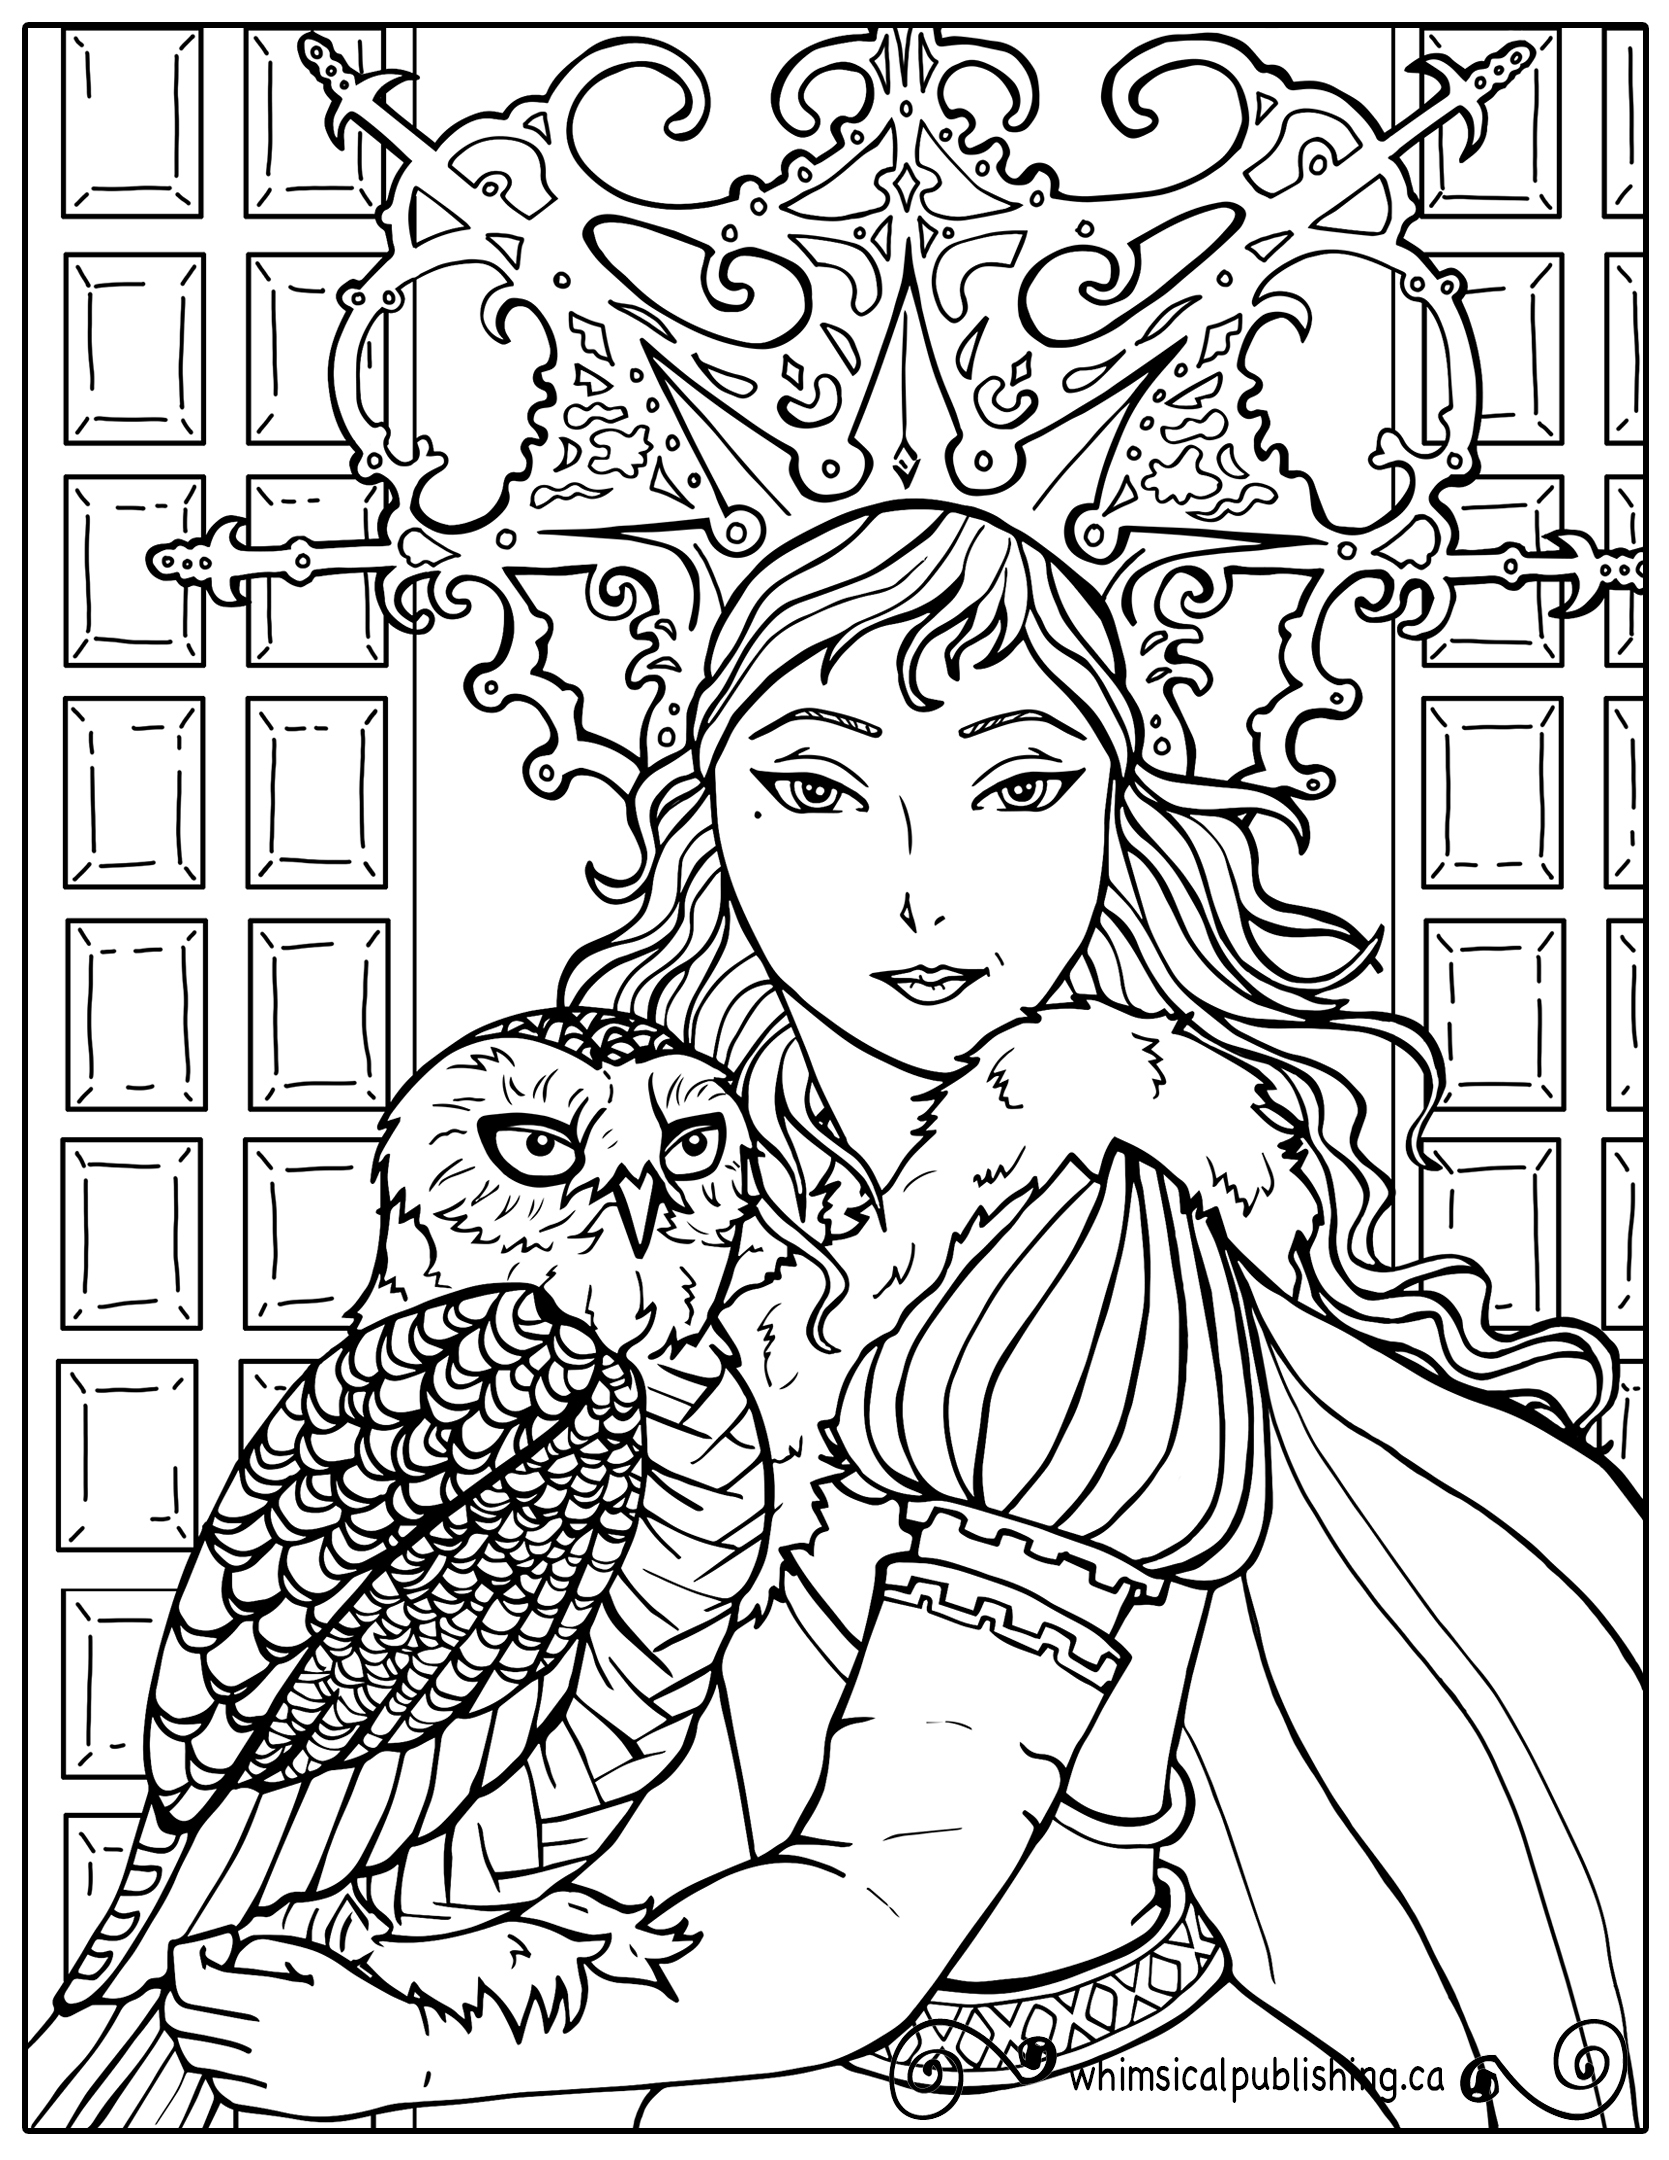 coloring pages to color online minion coloring pages best coloring pages for kids pages coloring online color to